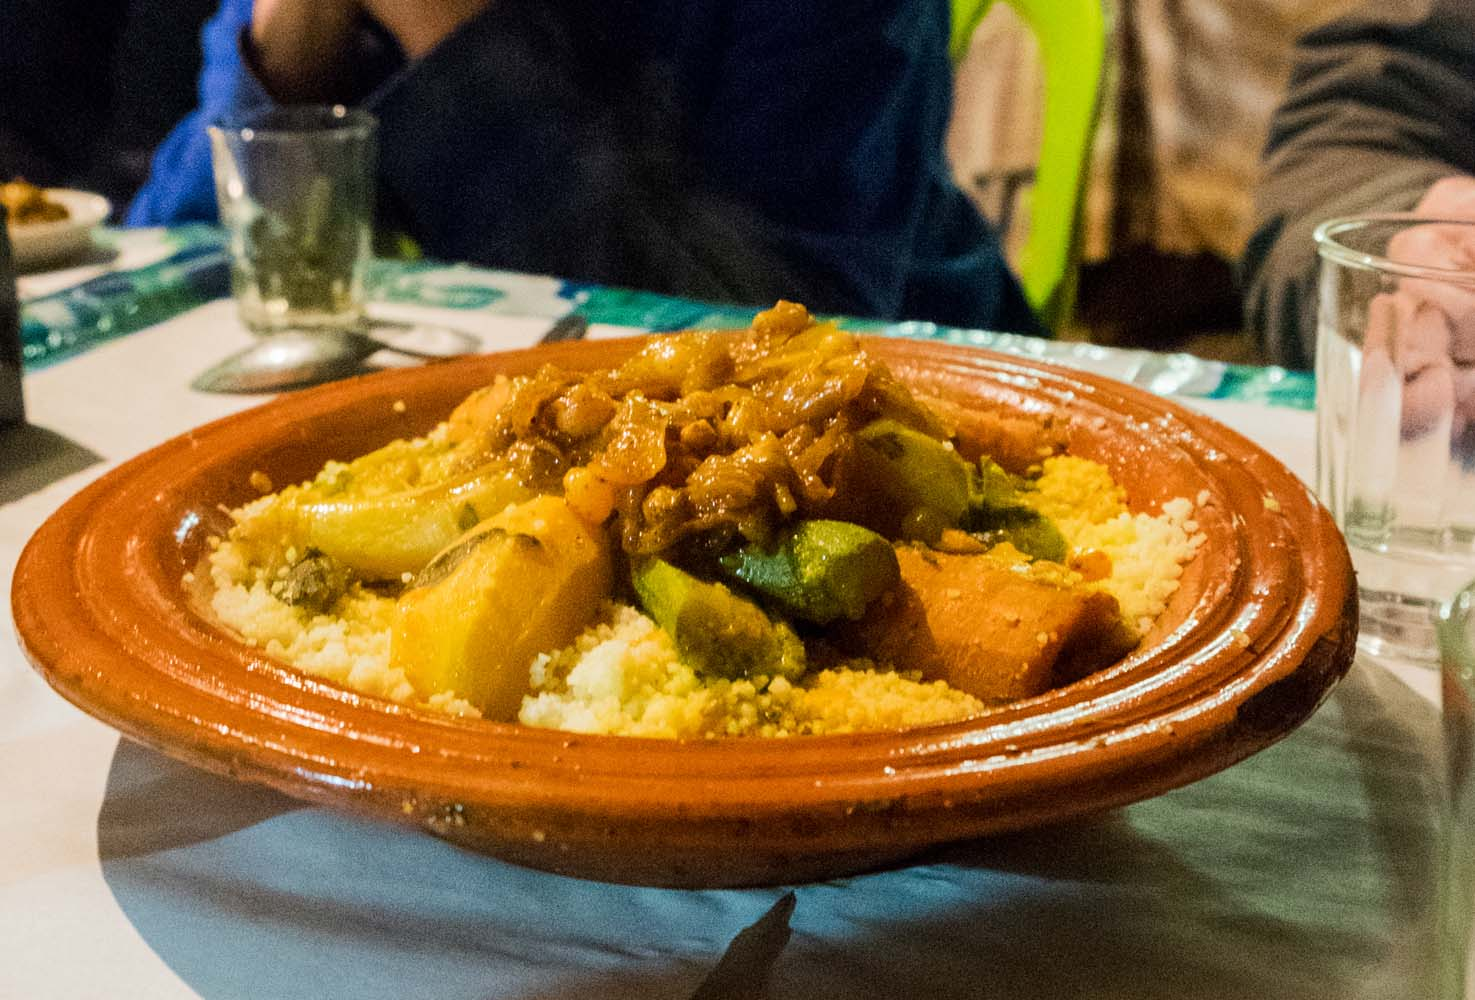 Want to discover Moroccan cuisine but don't know where to start? Join Marrakech Food Tours for a for a street food tour in Marrakech - find the best Marrakech restaurants & learn about Moroccan food.